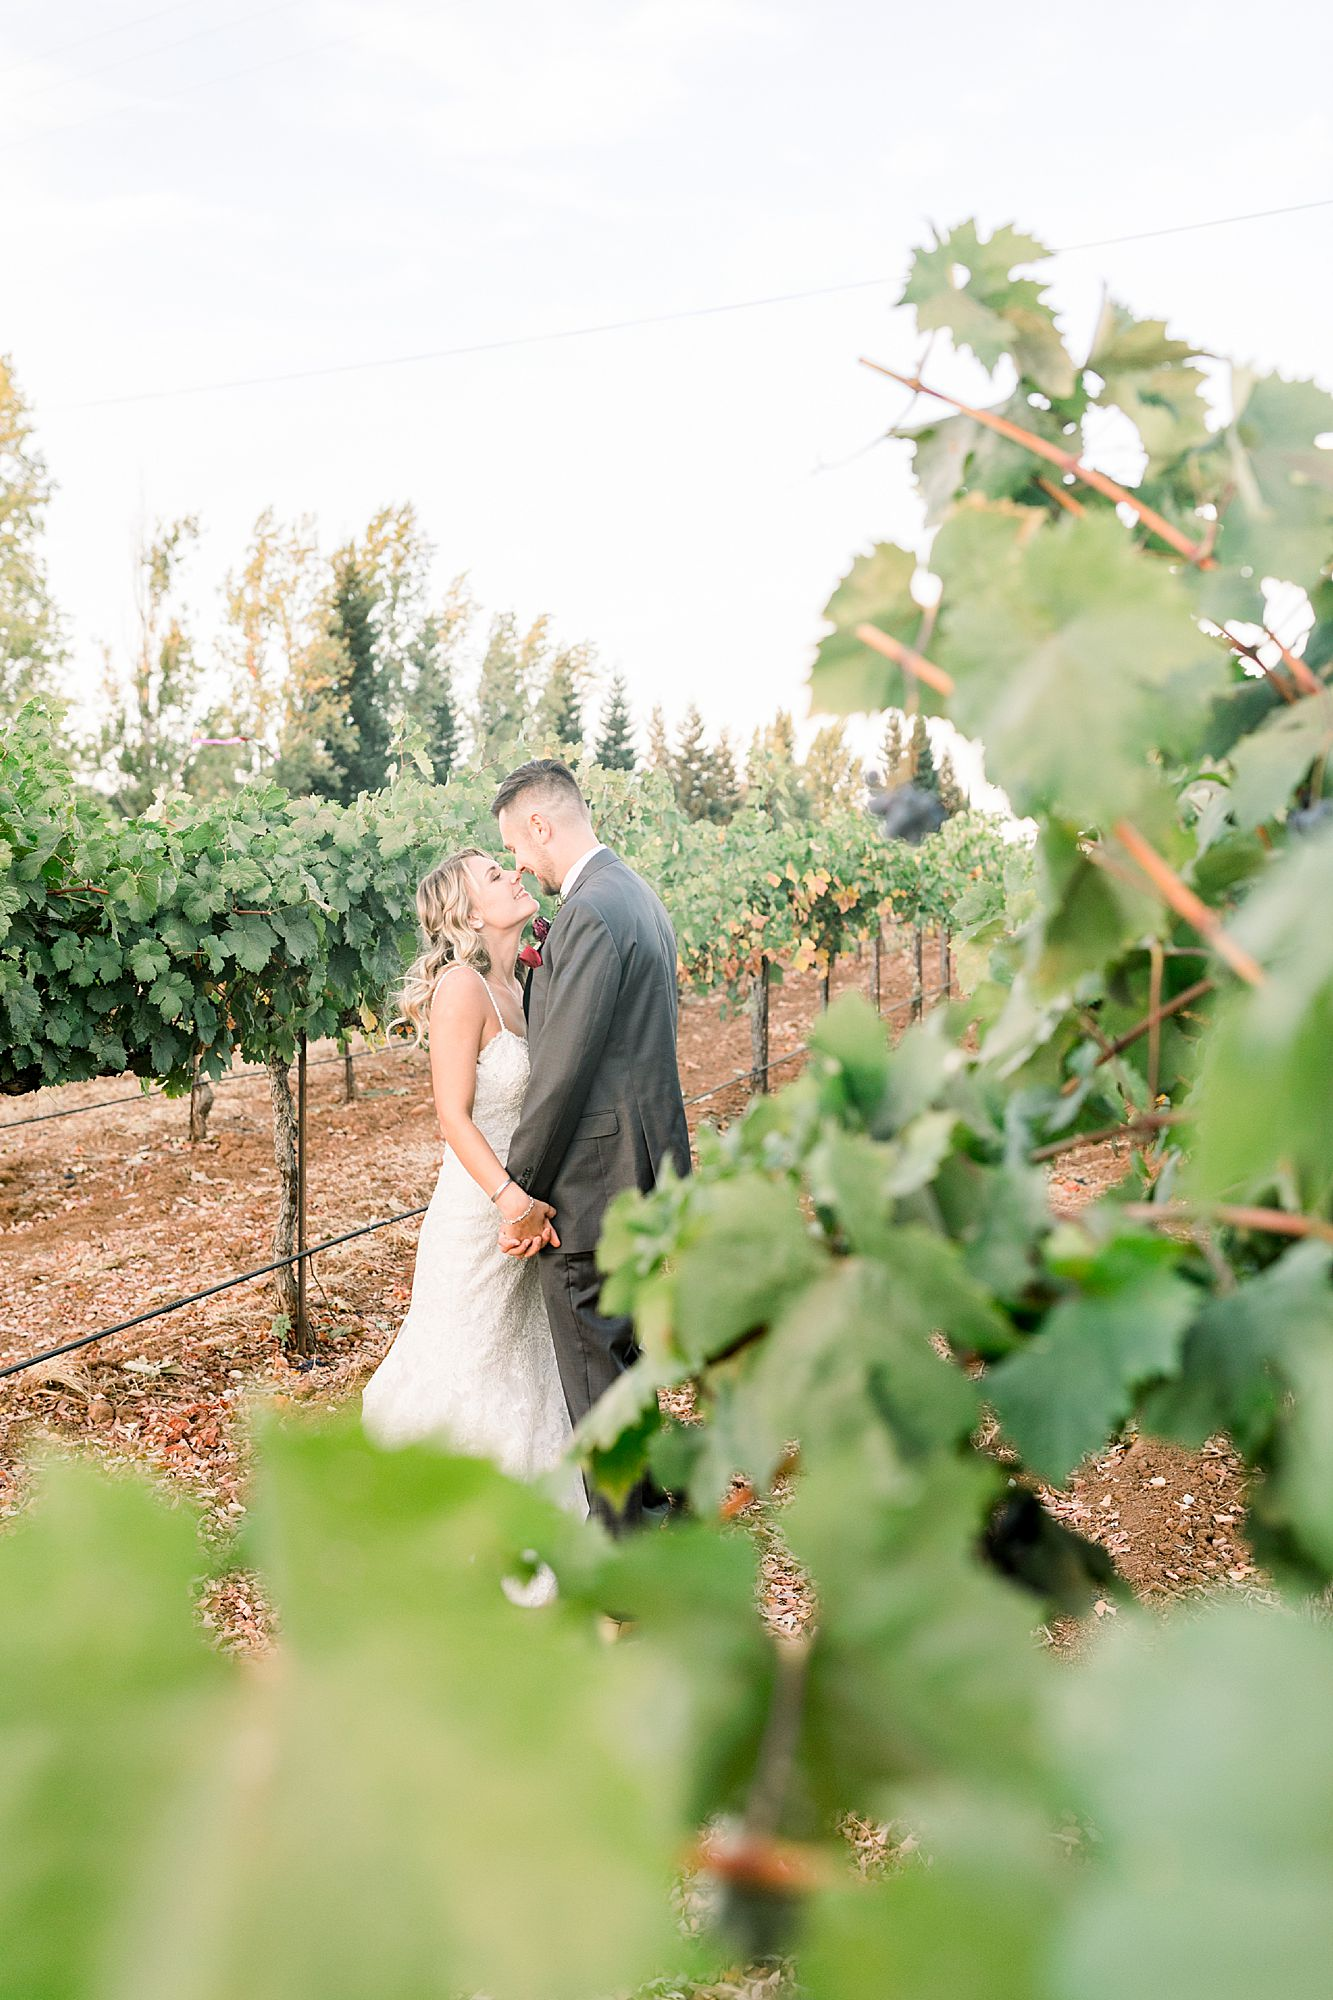 Avio Winery Wedding - Nataly and Eli - Winery Wedding - Amador Wedding Photographer - Suters Creek Wedding Photography_0063.jpg